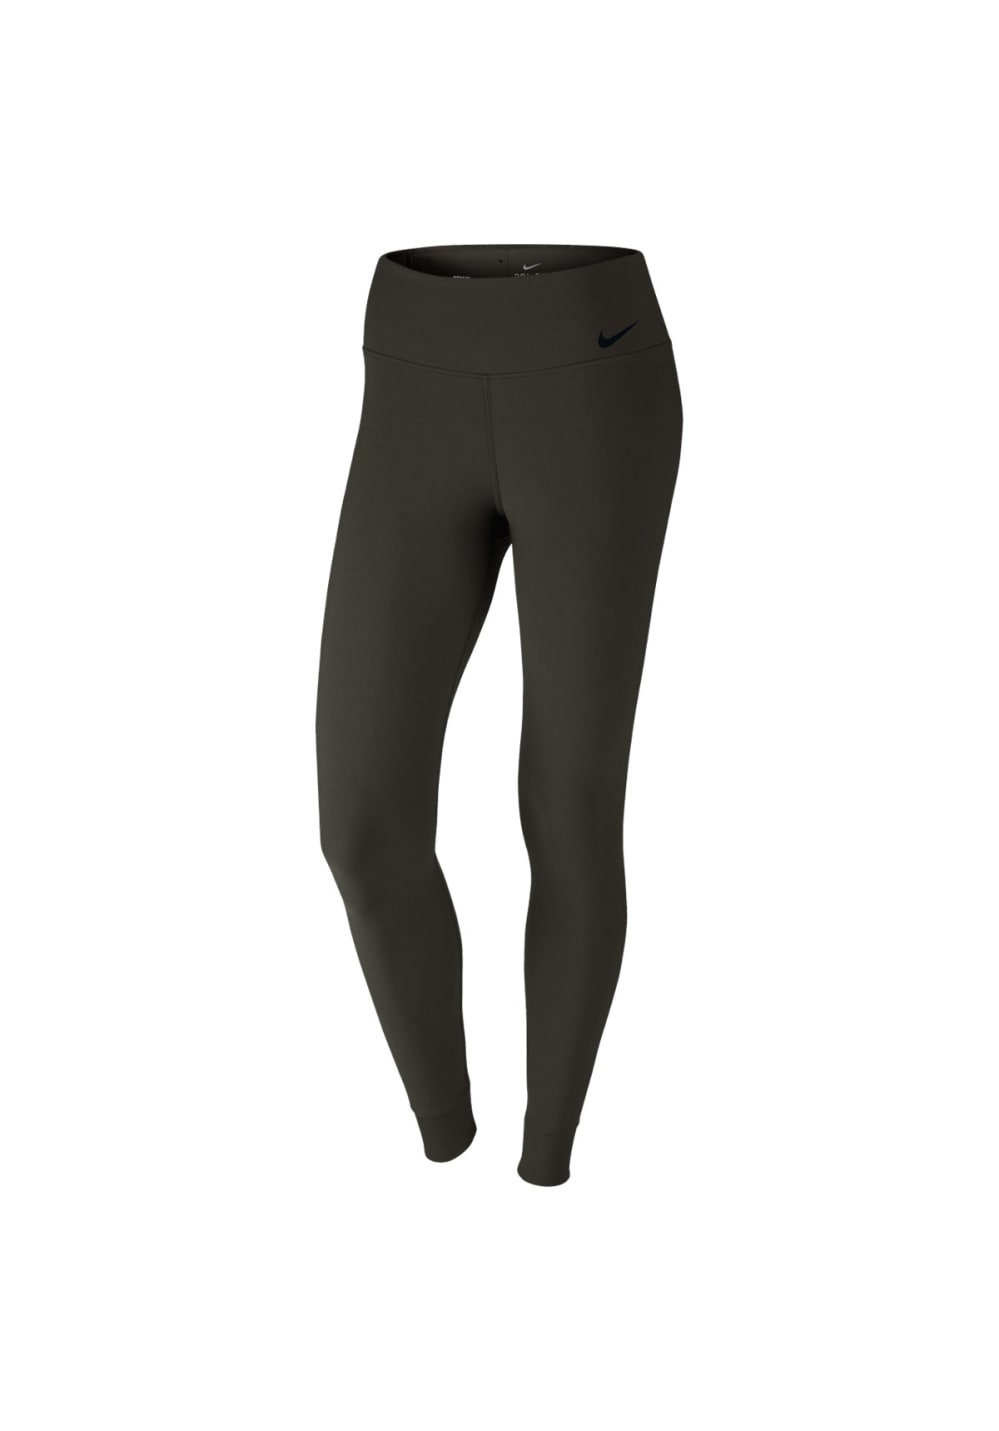 Nike Power Legend Training Tight Femmes Pantalons course